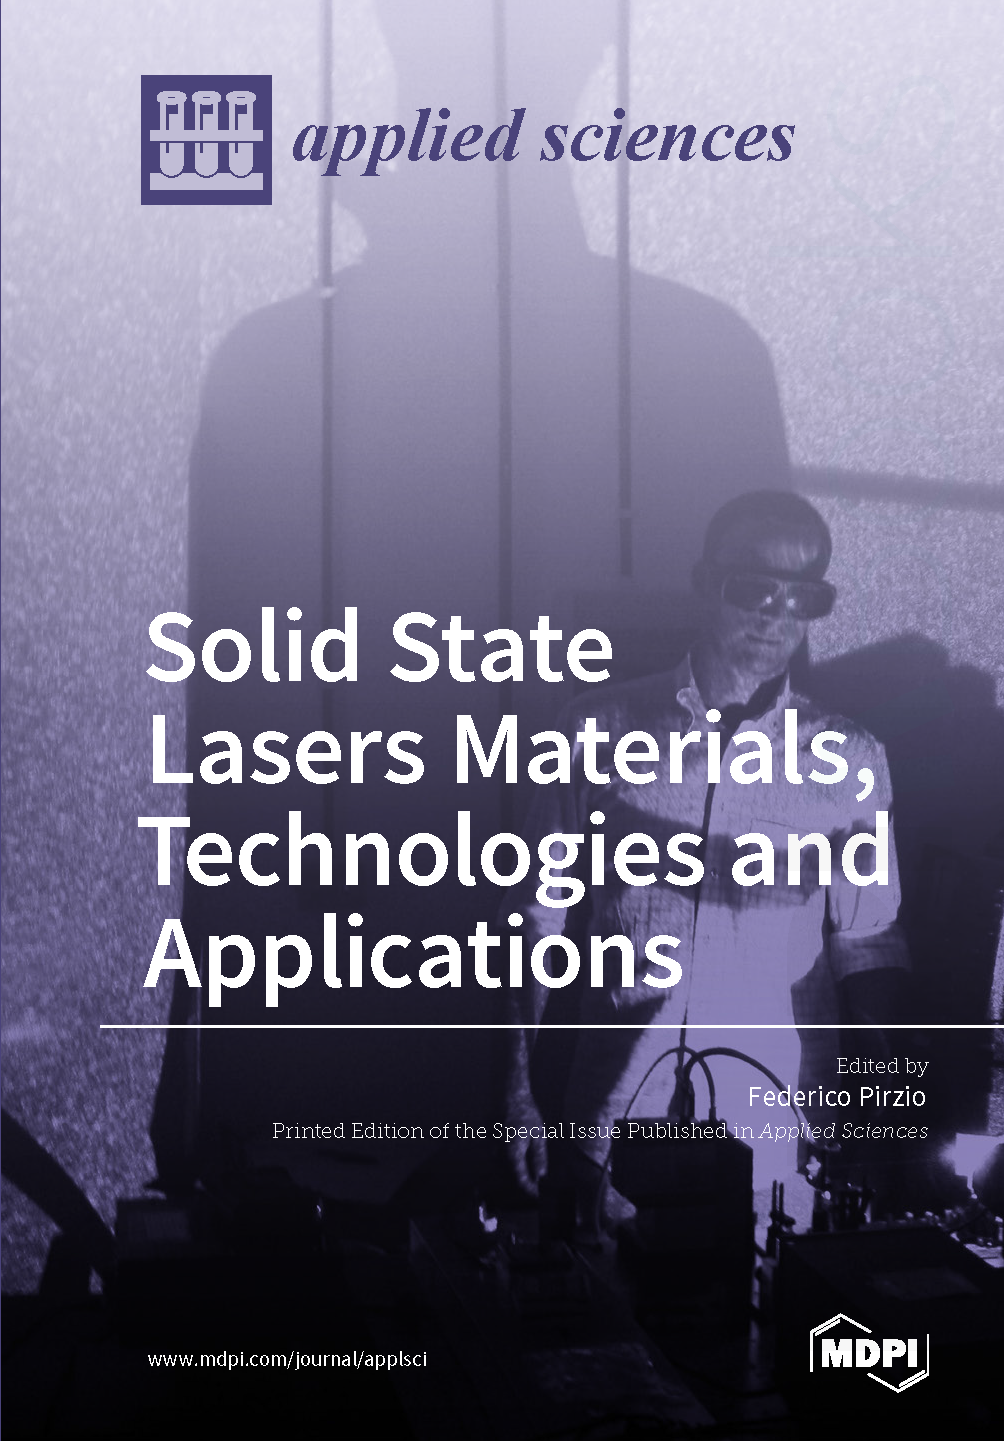 Solid State Lasers Materials, Technologies and Applications